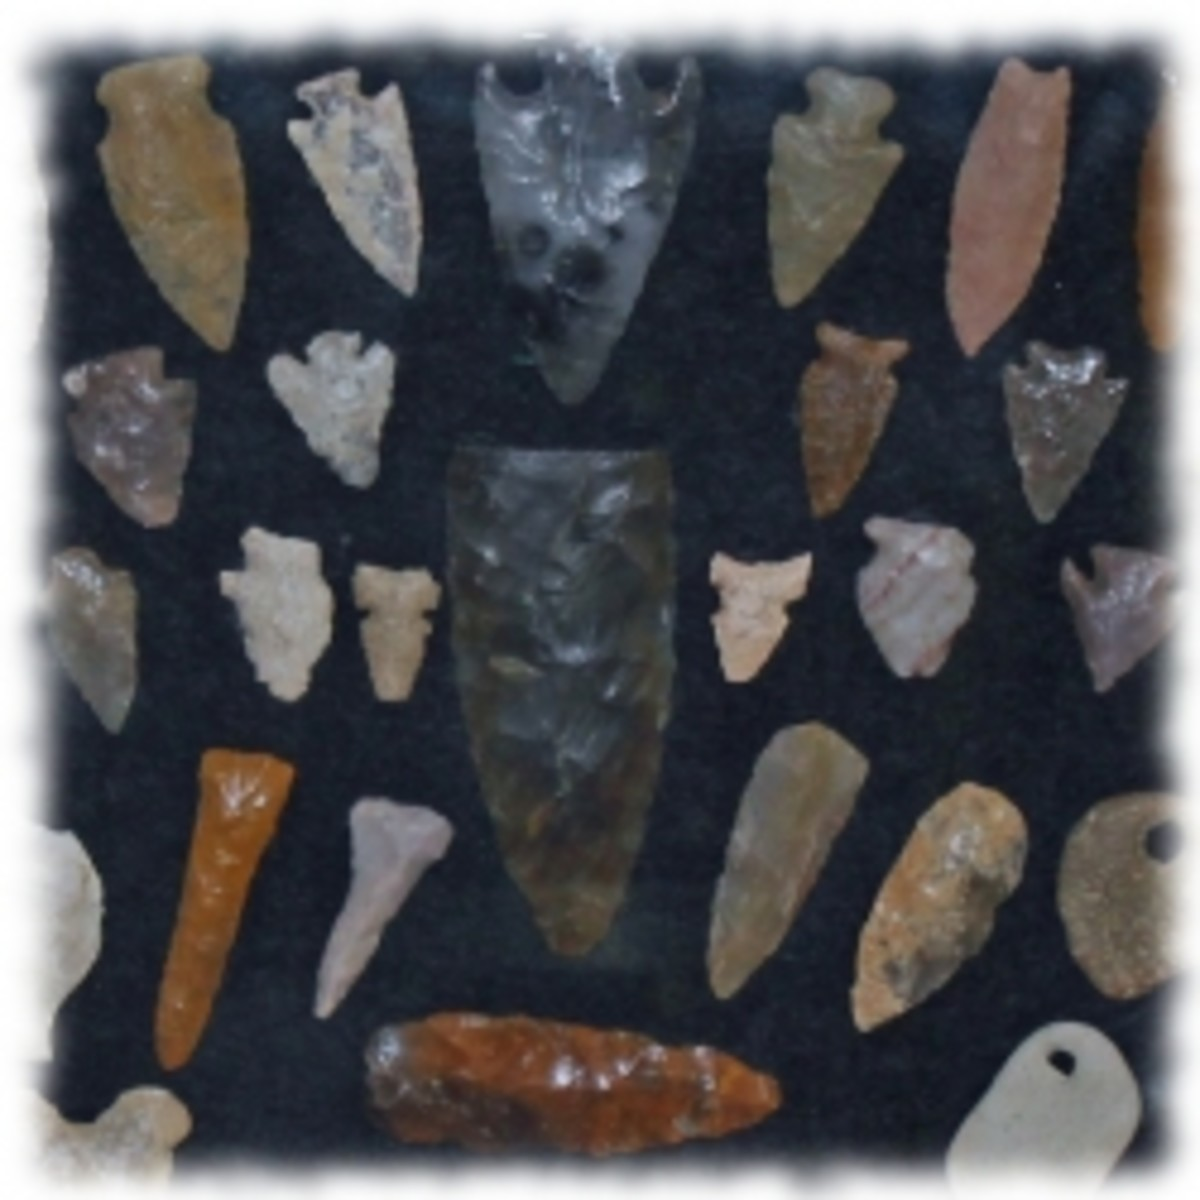 Cases To Display Your Arrowhead Collection